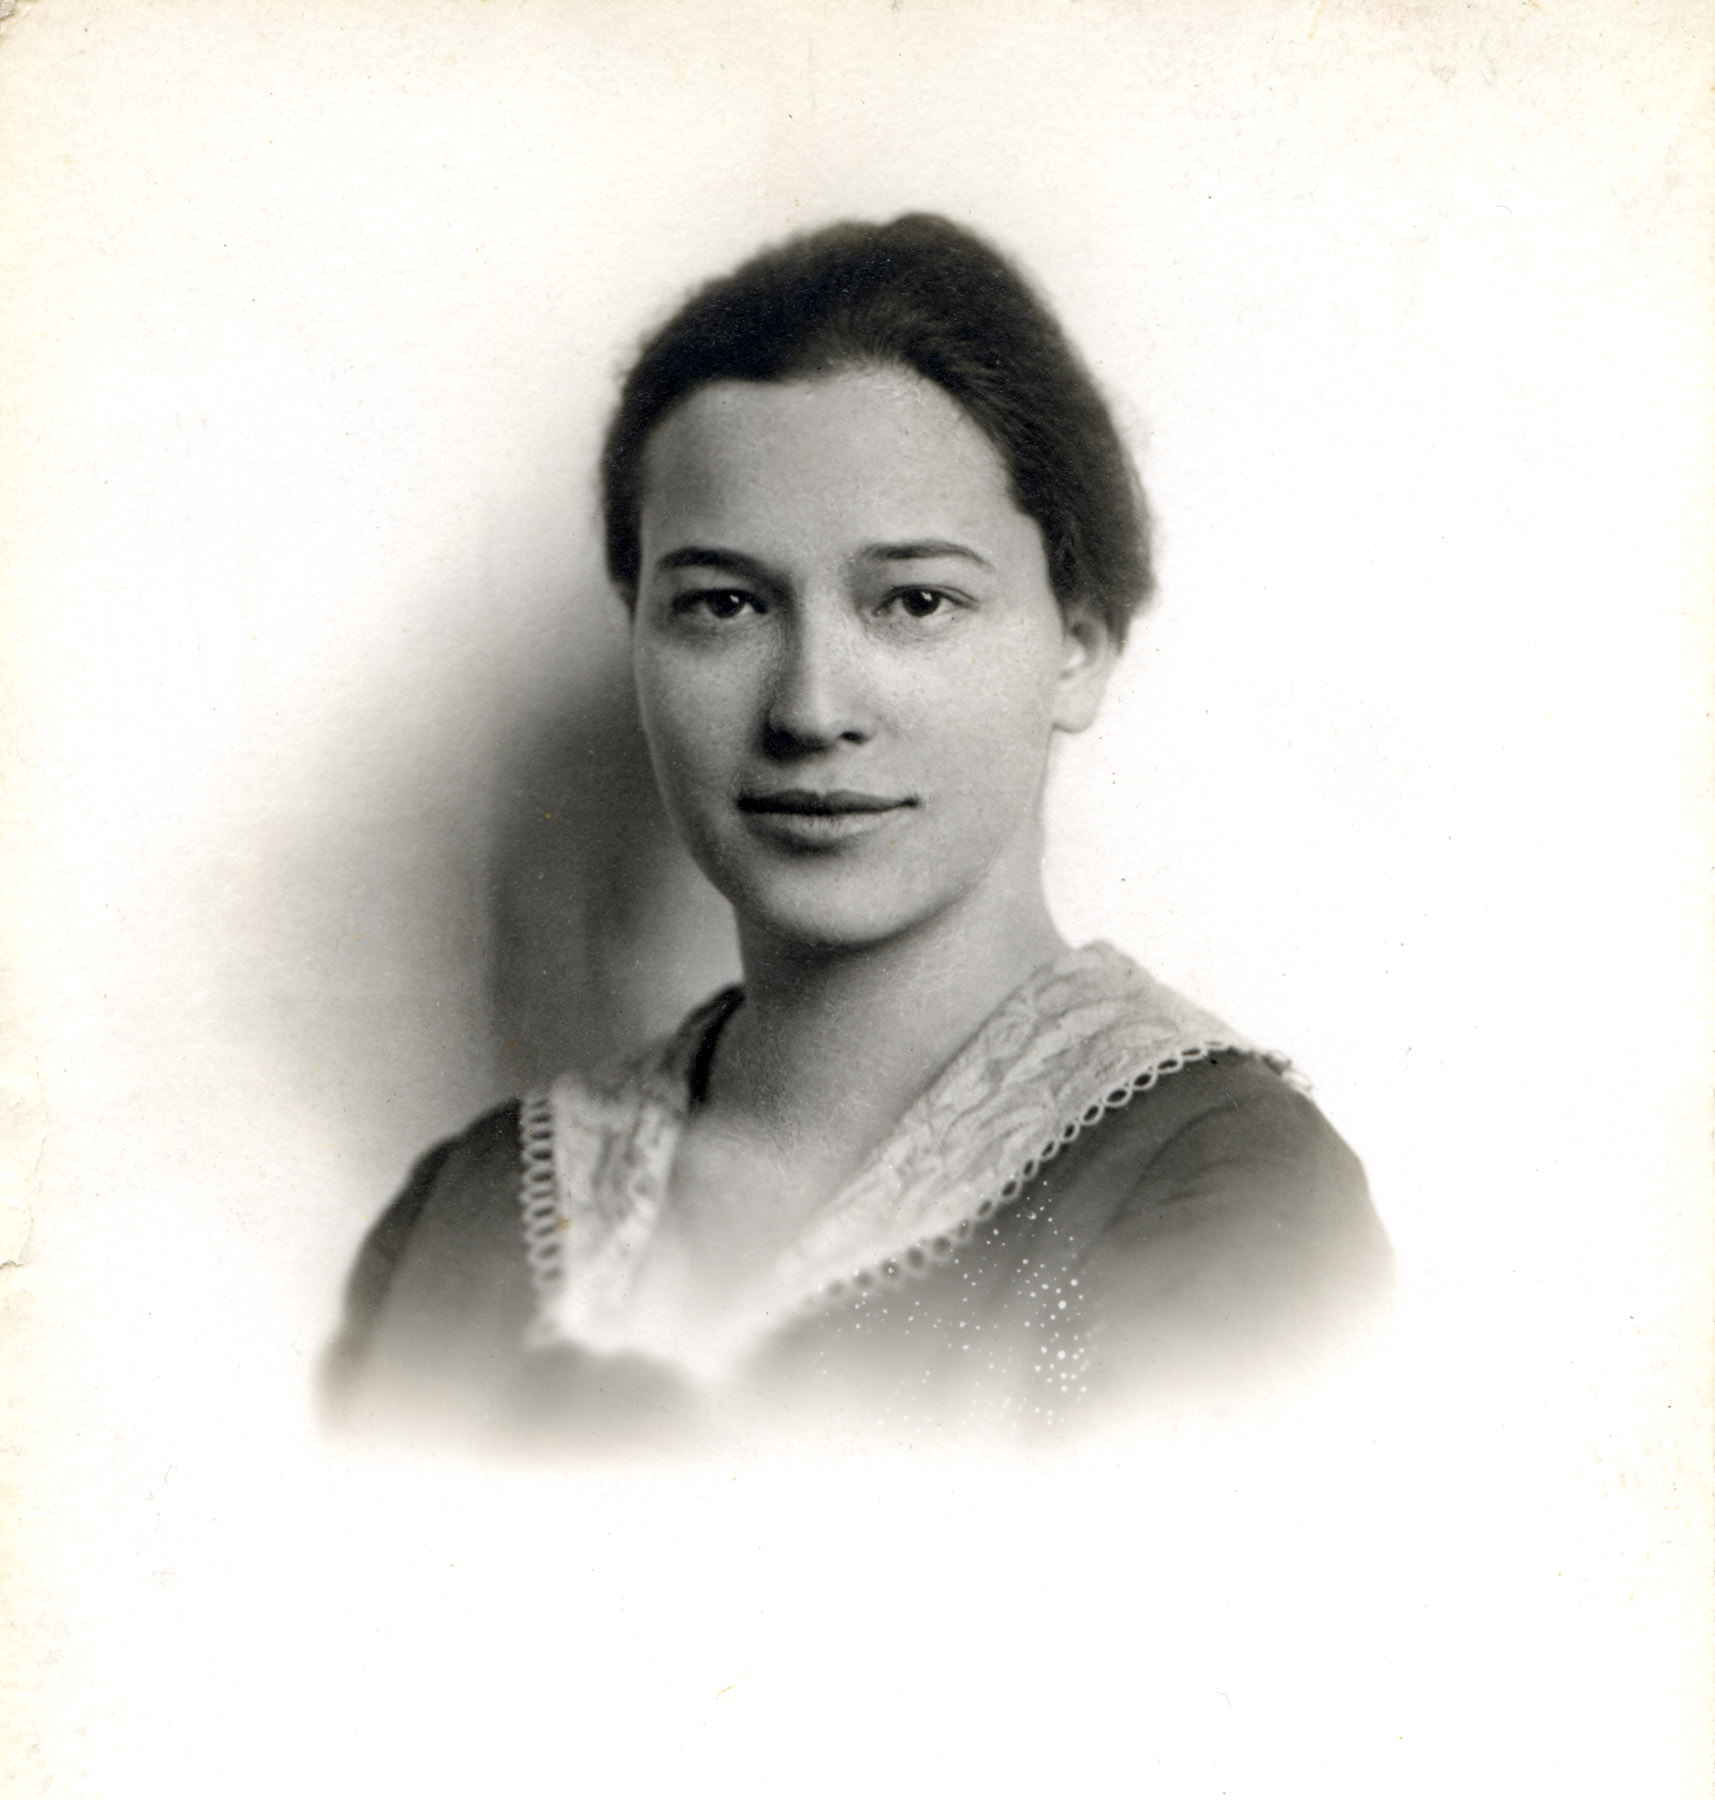 Bernice Fried Passport Photo. (c. 1930)